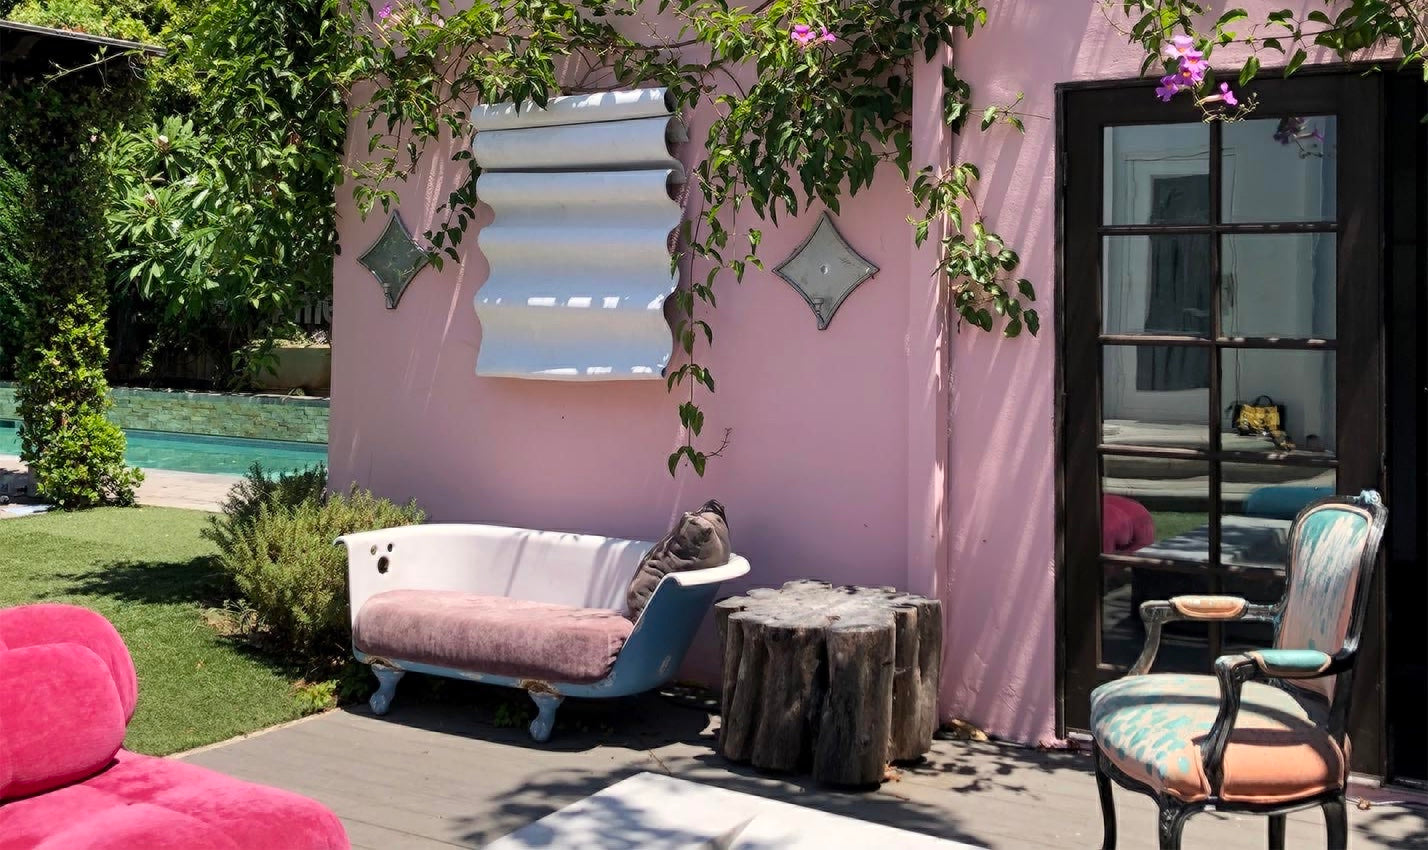 Outdoor area featuring pink background and plants/Courtesy: Voila! Creative Studio/Indoor-outdoor living spaces, like this bright space designed by Voila! Creative Studio, will continue to influence home design.